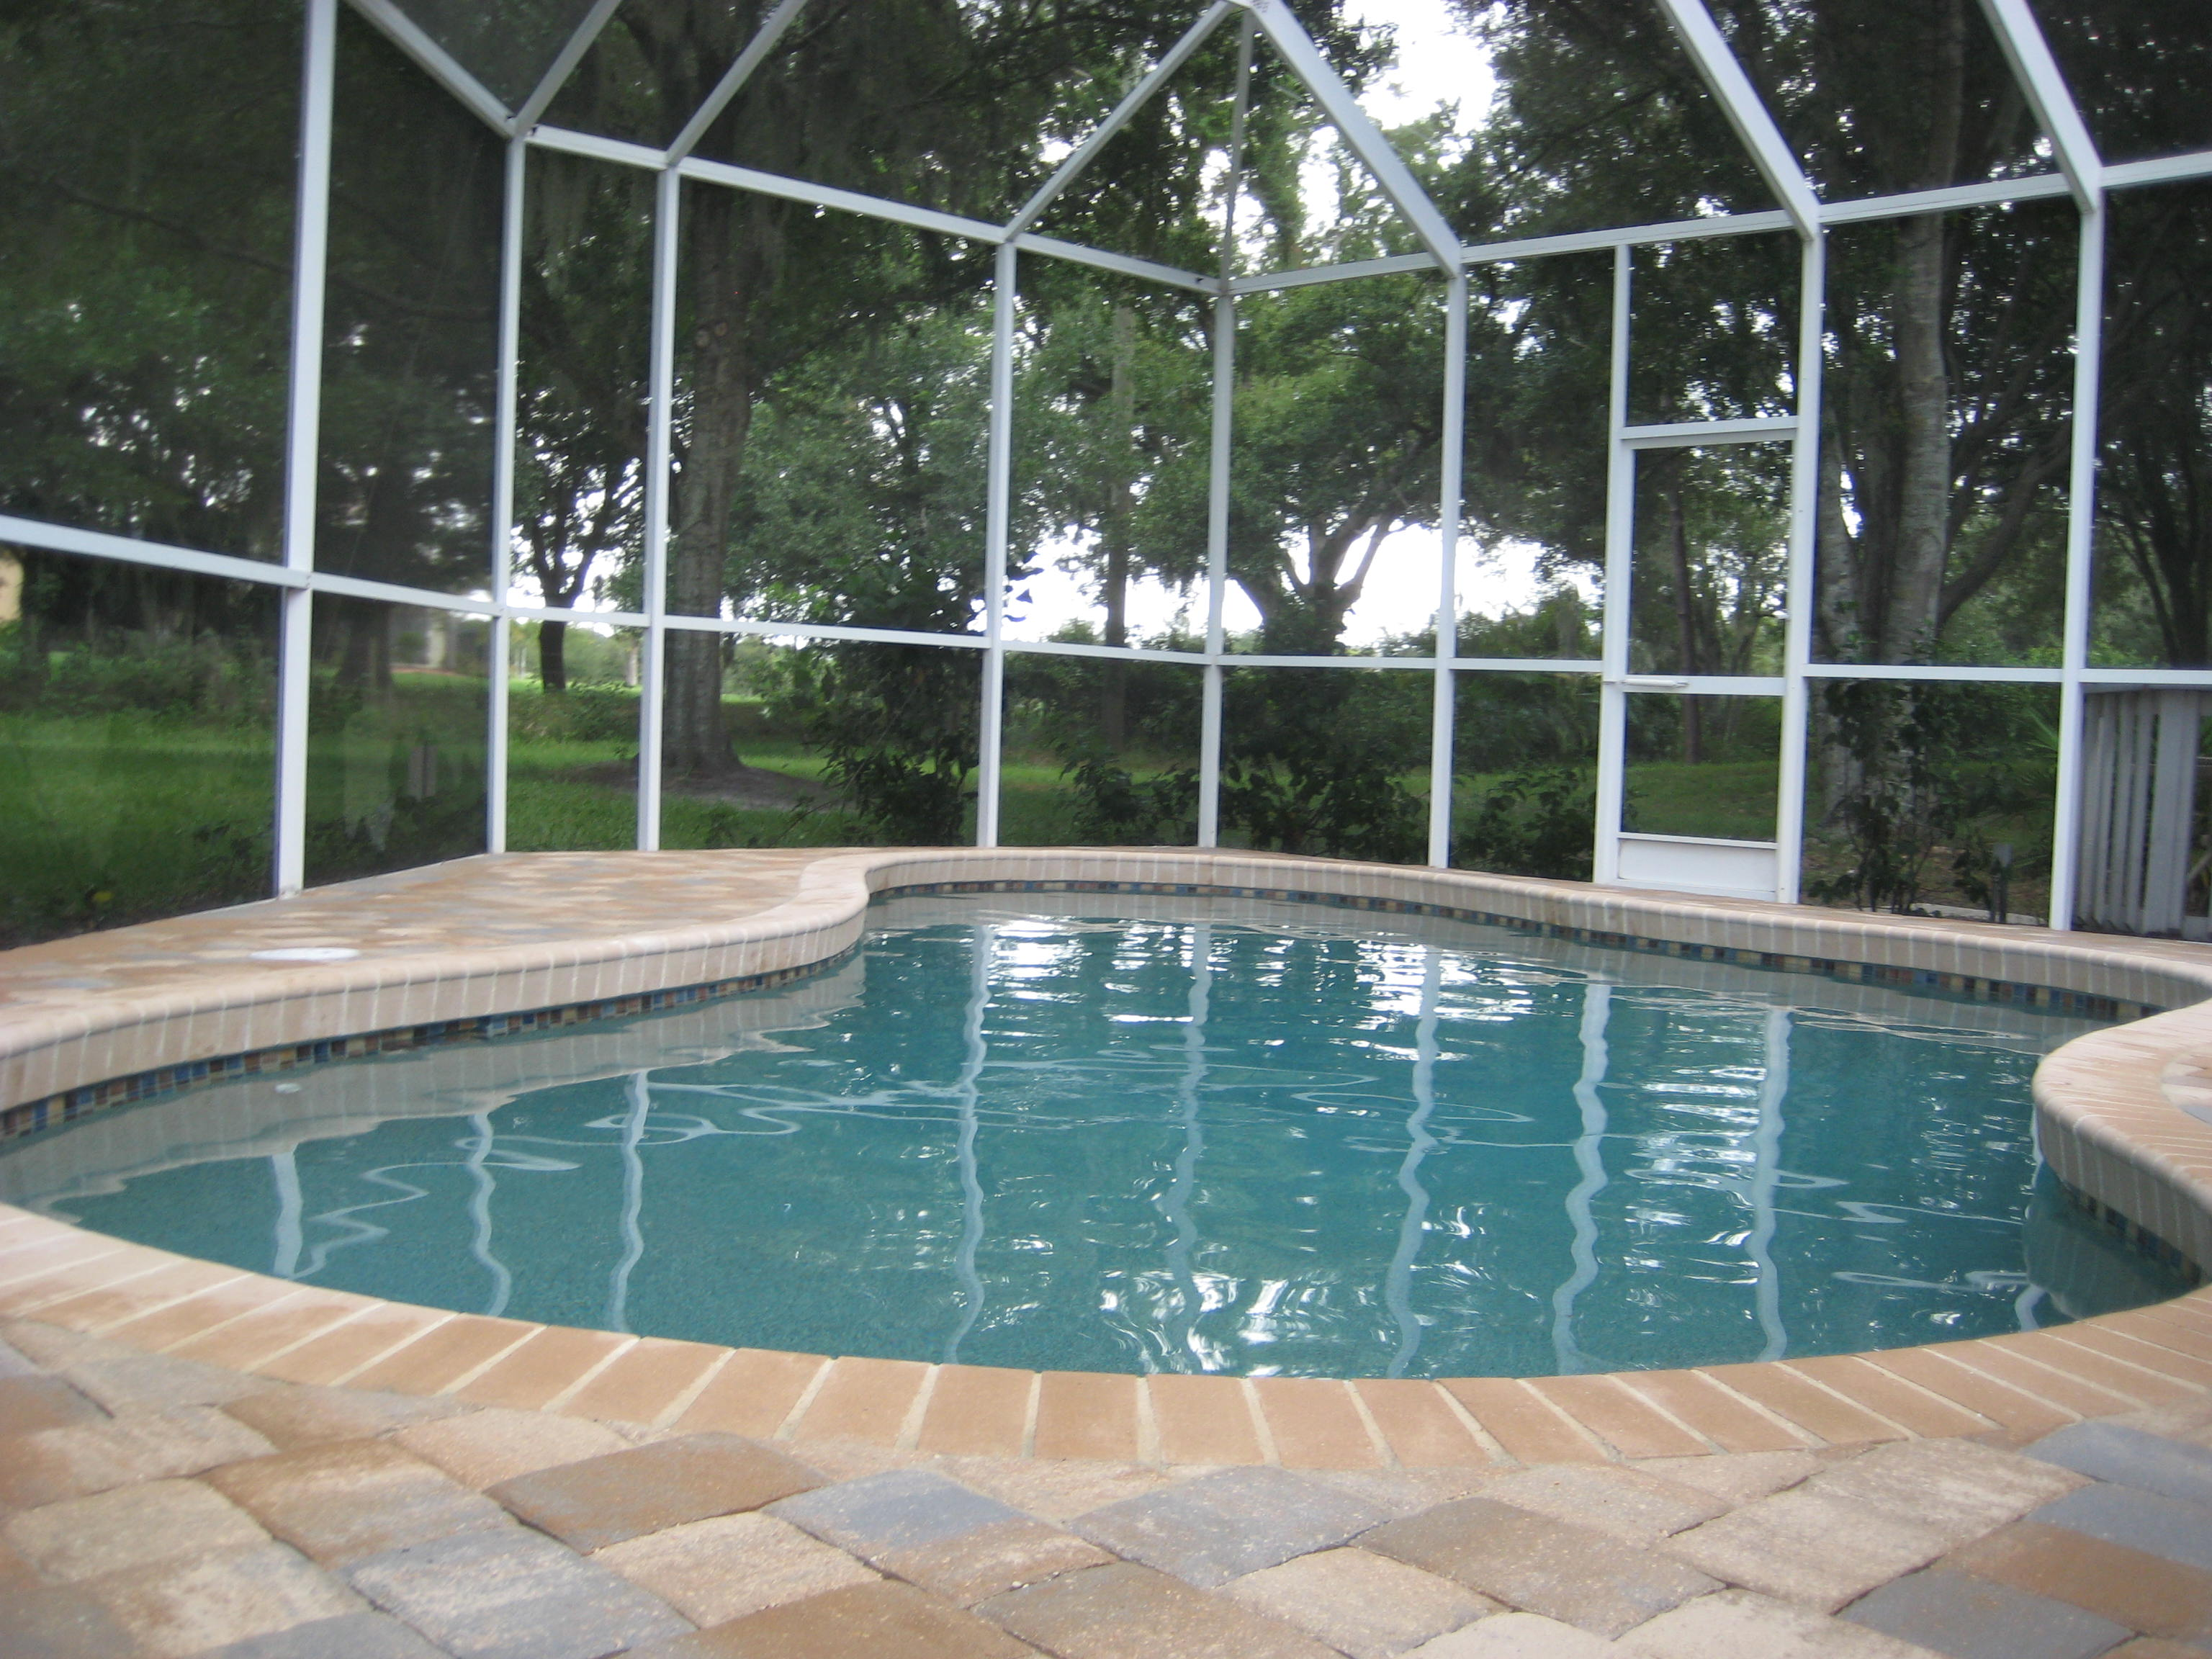 Thin Overlay Pavers Pool Renovation  Pool Resurfacing  Thin Paver Decking Overlays